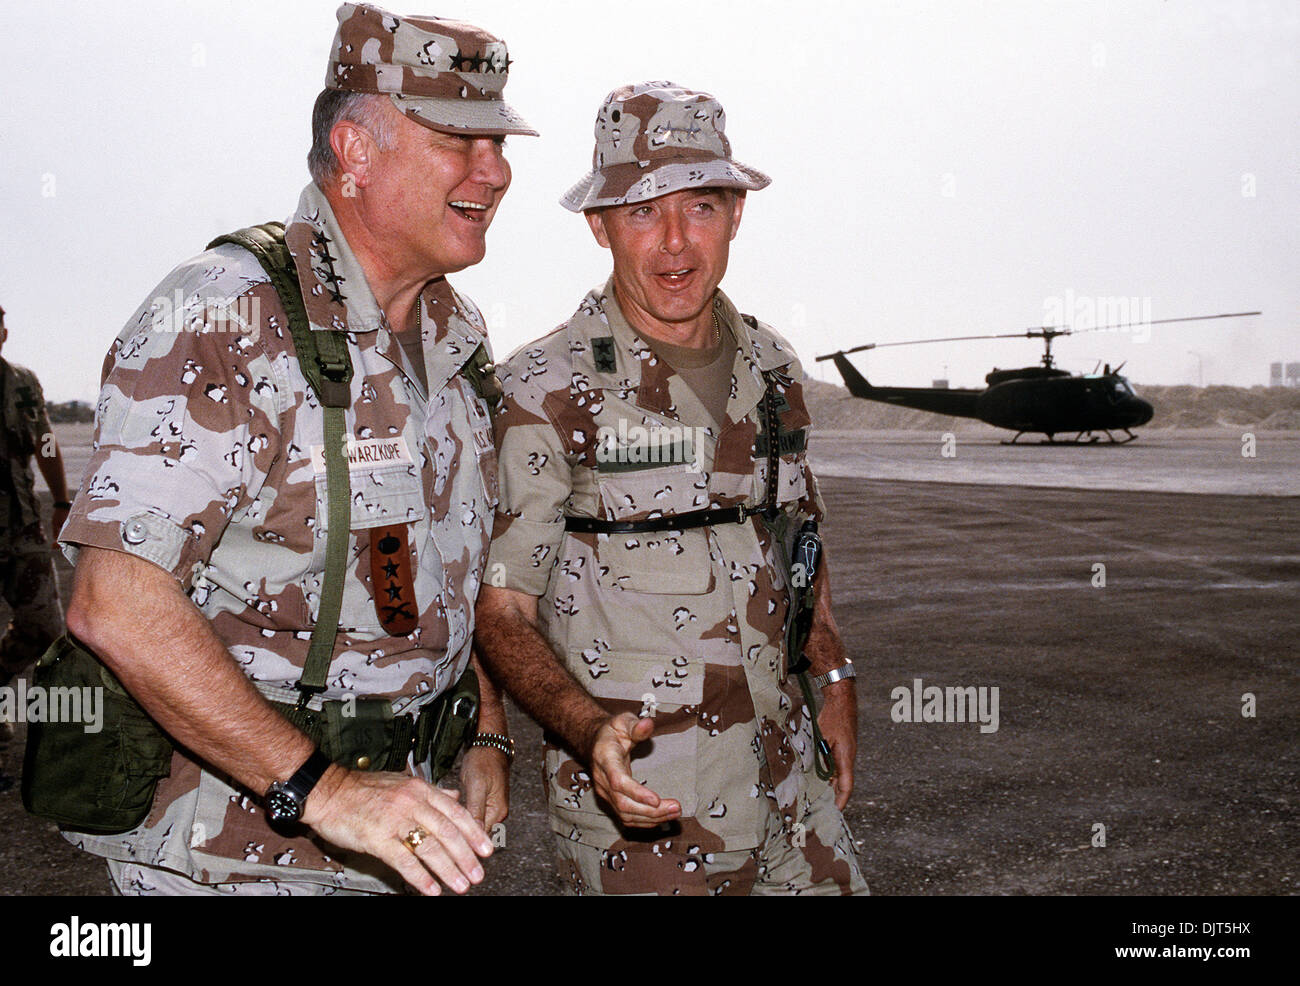 US Gen H. Norman Schwarzkopf, commander-in-chief of the Central Command talks with Maj. Gen. Barry McCaffrey, commanding general, 24th Infantry Division January 1, 1992 in Saudi Arabia. - Stock Image